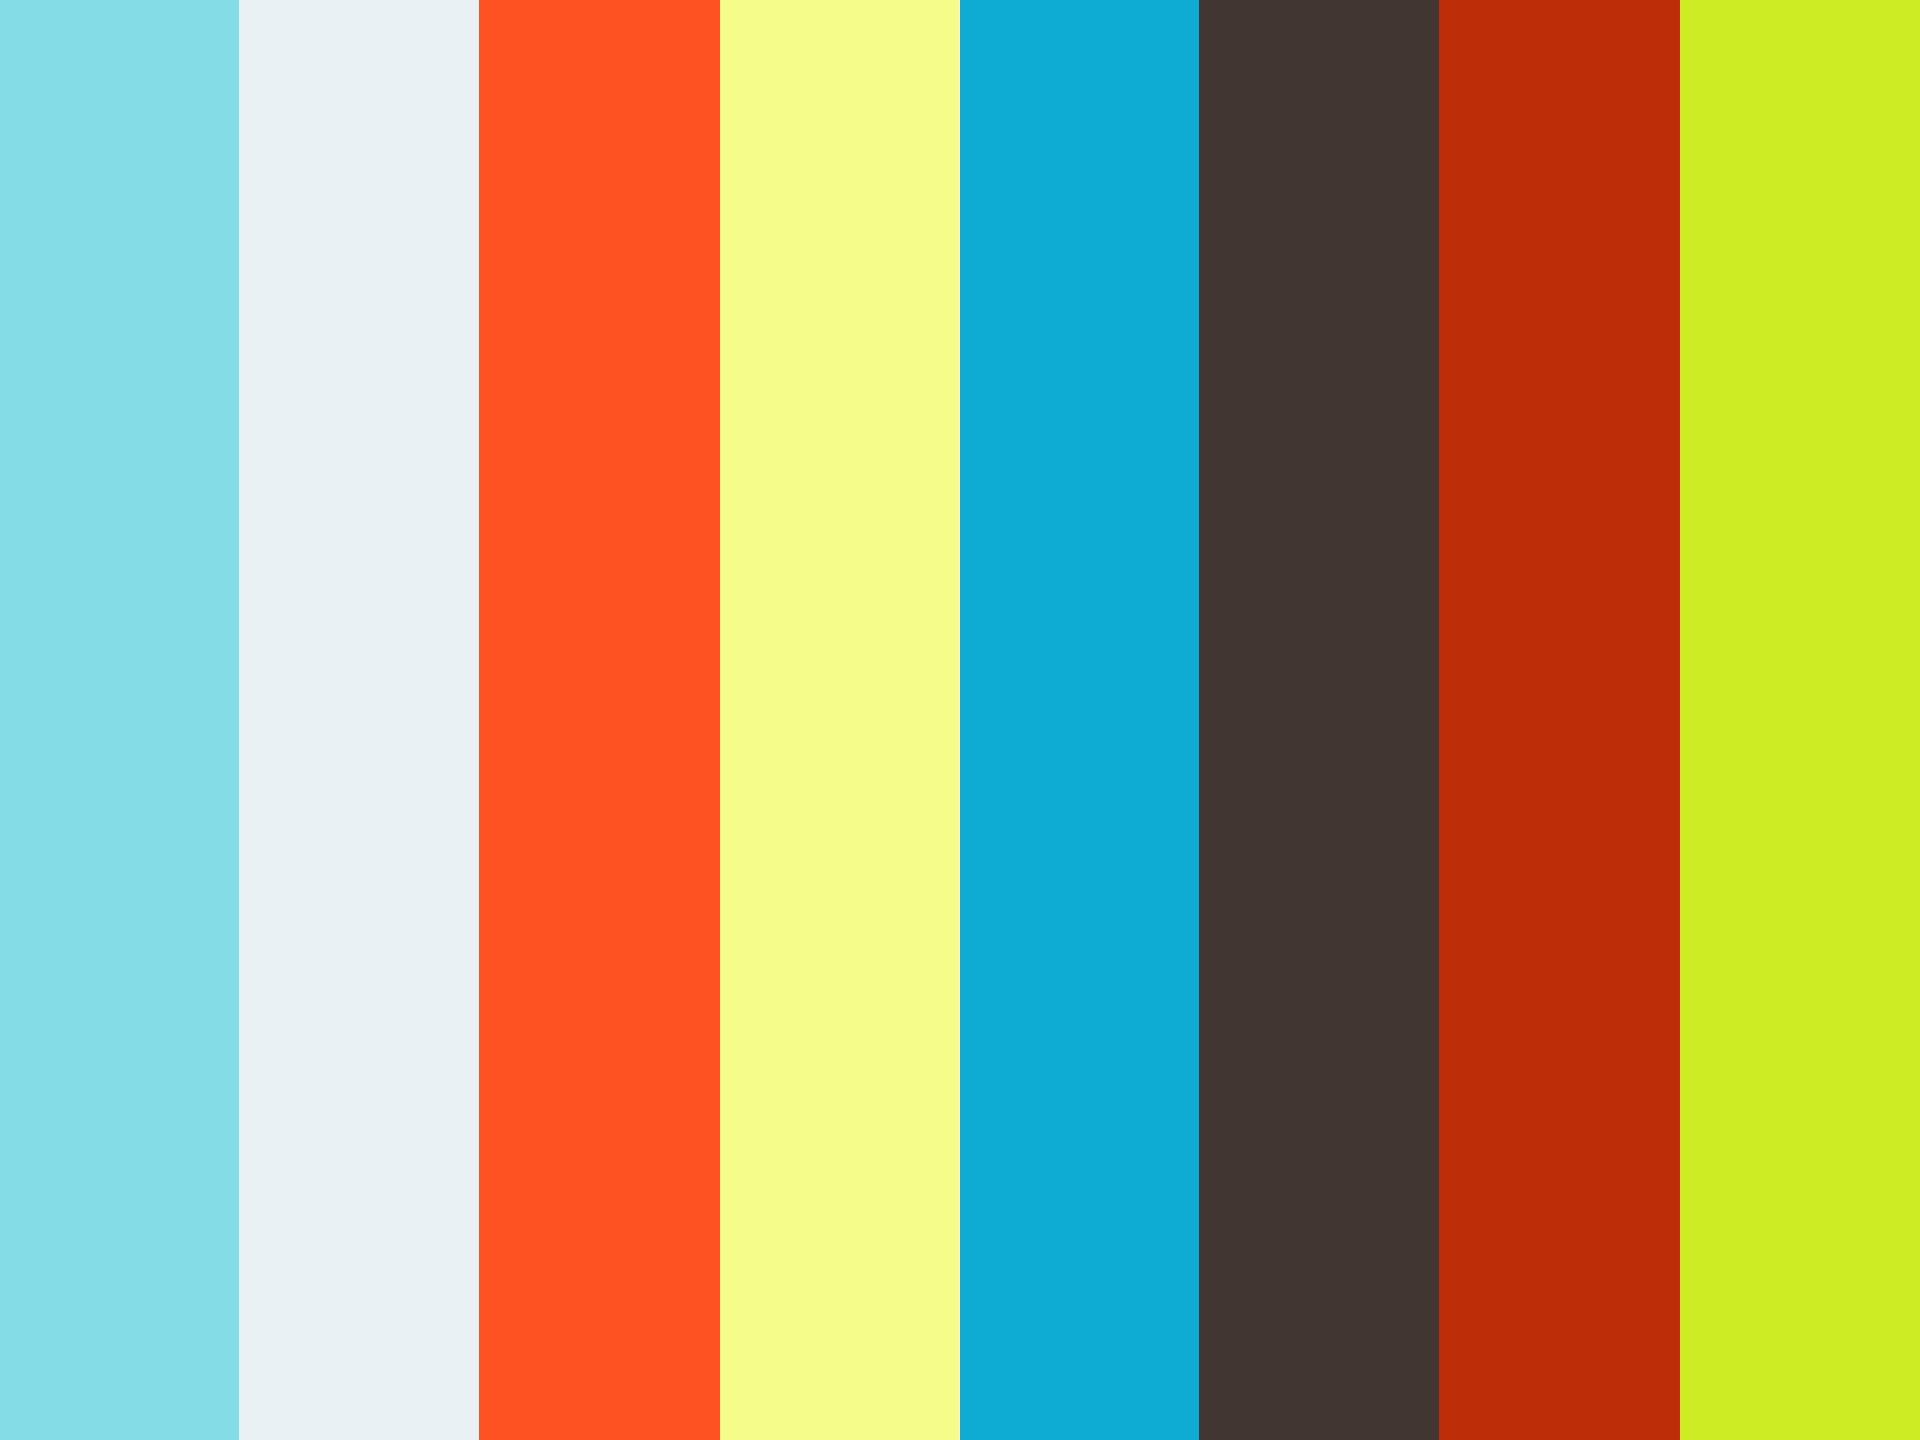 jeep jk stereo wiring diagram jeep image wiring 2017 jeep wrangler stereo wiring diagram ewiring on jeep jk stereo wiring diagram